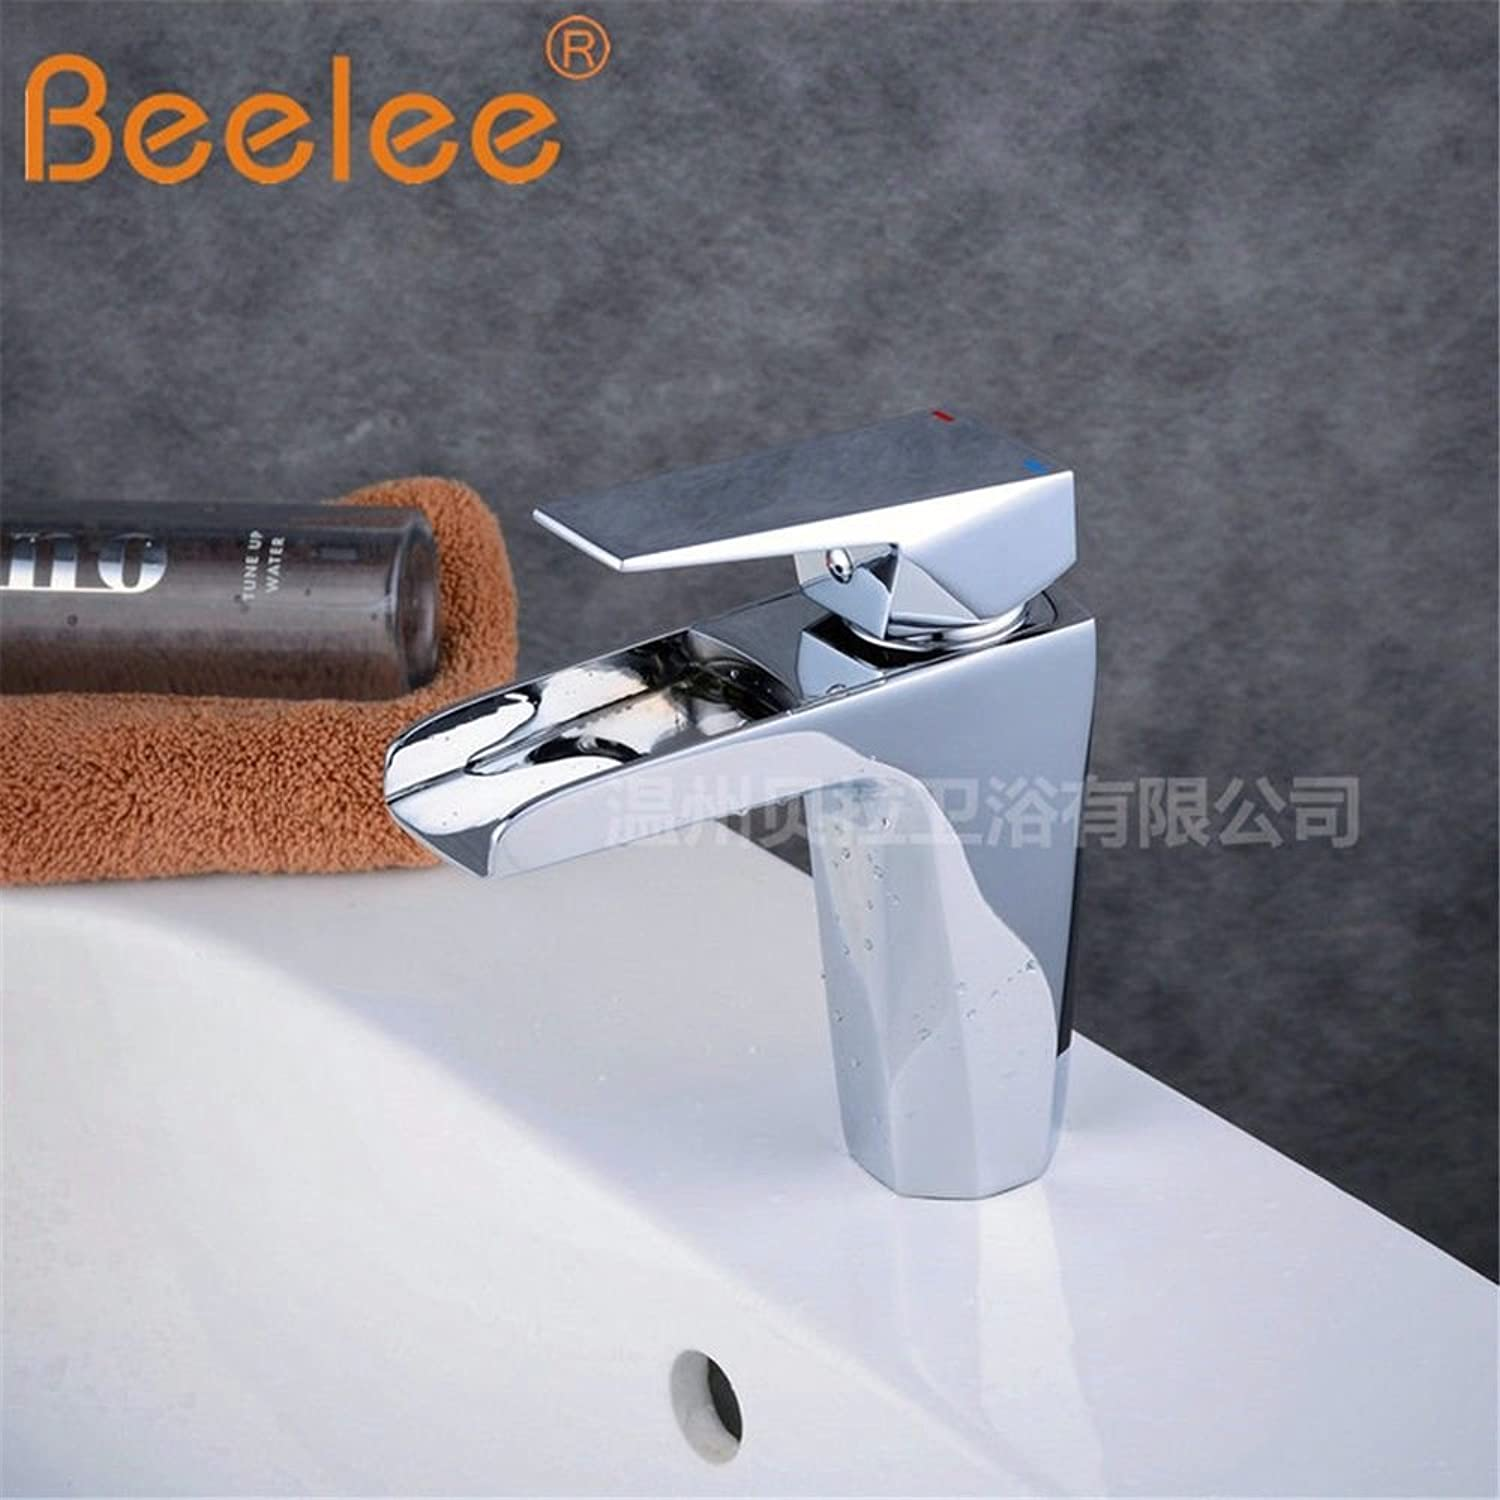 Gyps Faucet Basin Mixer Tap Waterfall Faucet Antique Bathroom Mixer Bar Mixer Shower Set Tap antique bathroom faucet Chassis basin cold water tap washbasin waterfall lowered basin full copper fittings